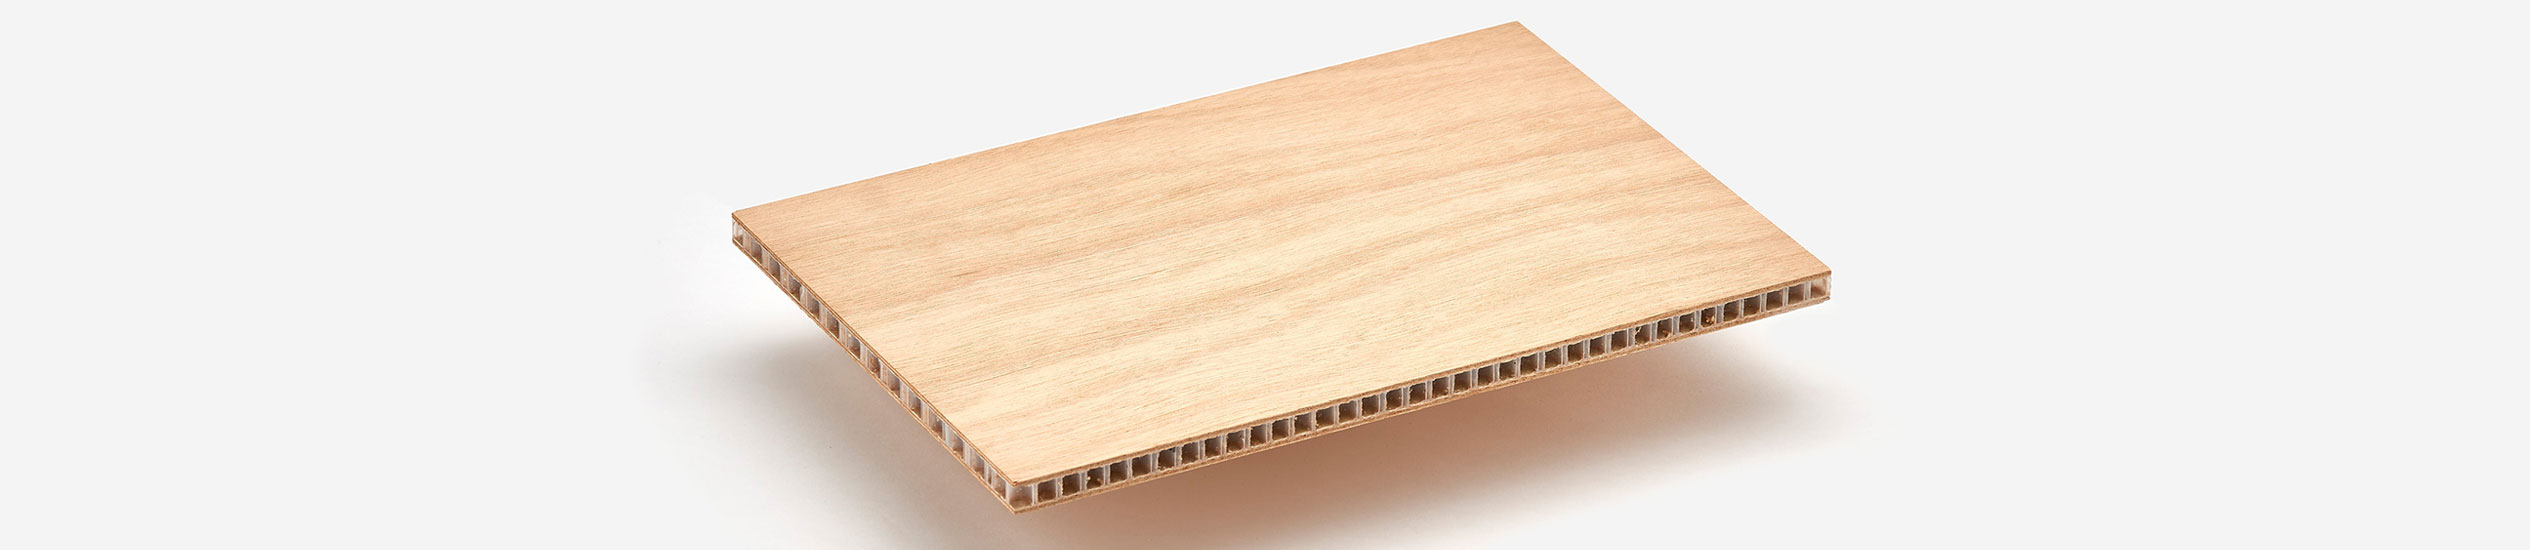 COMPOCEL® WP​ is a sandwich panel with a polypropylene honeycomb core and skins in plywood.